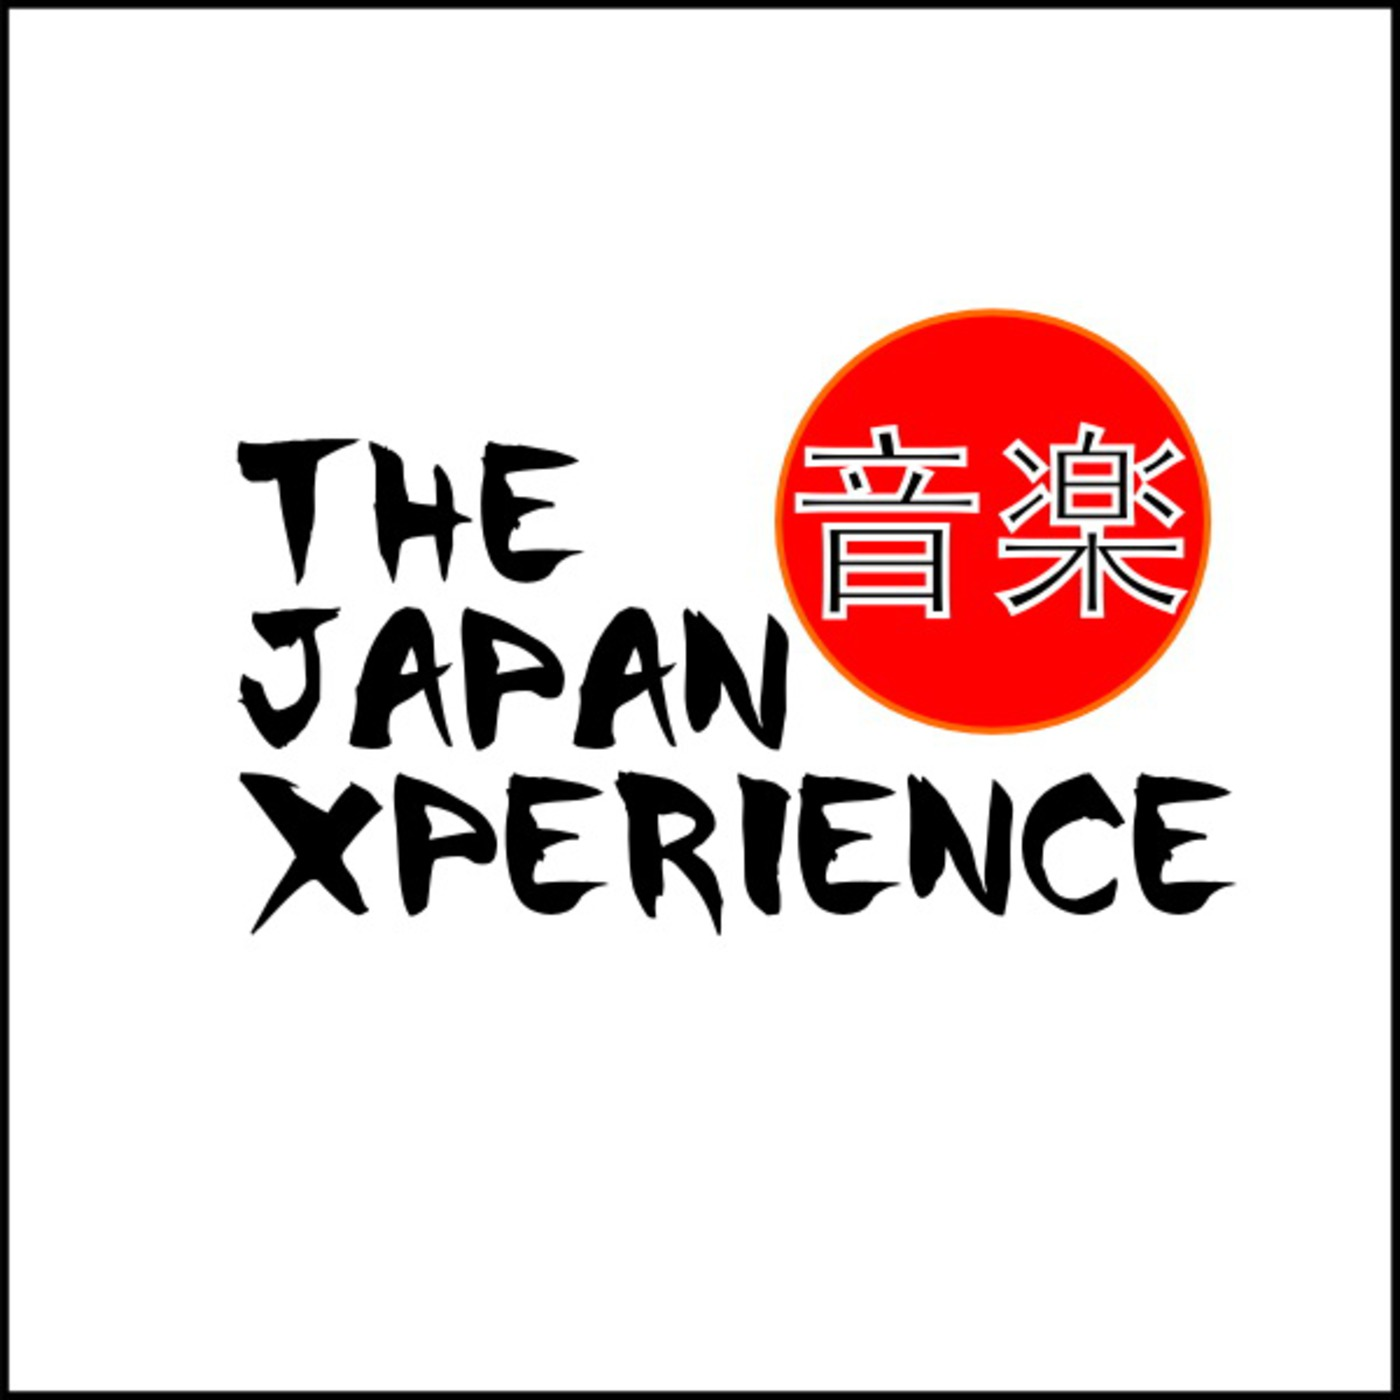 TJX: The Japan Xperience